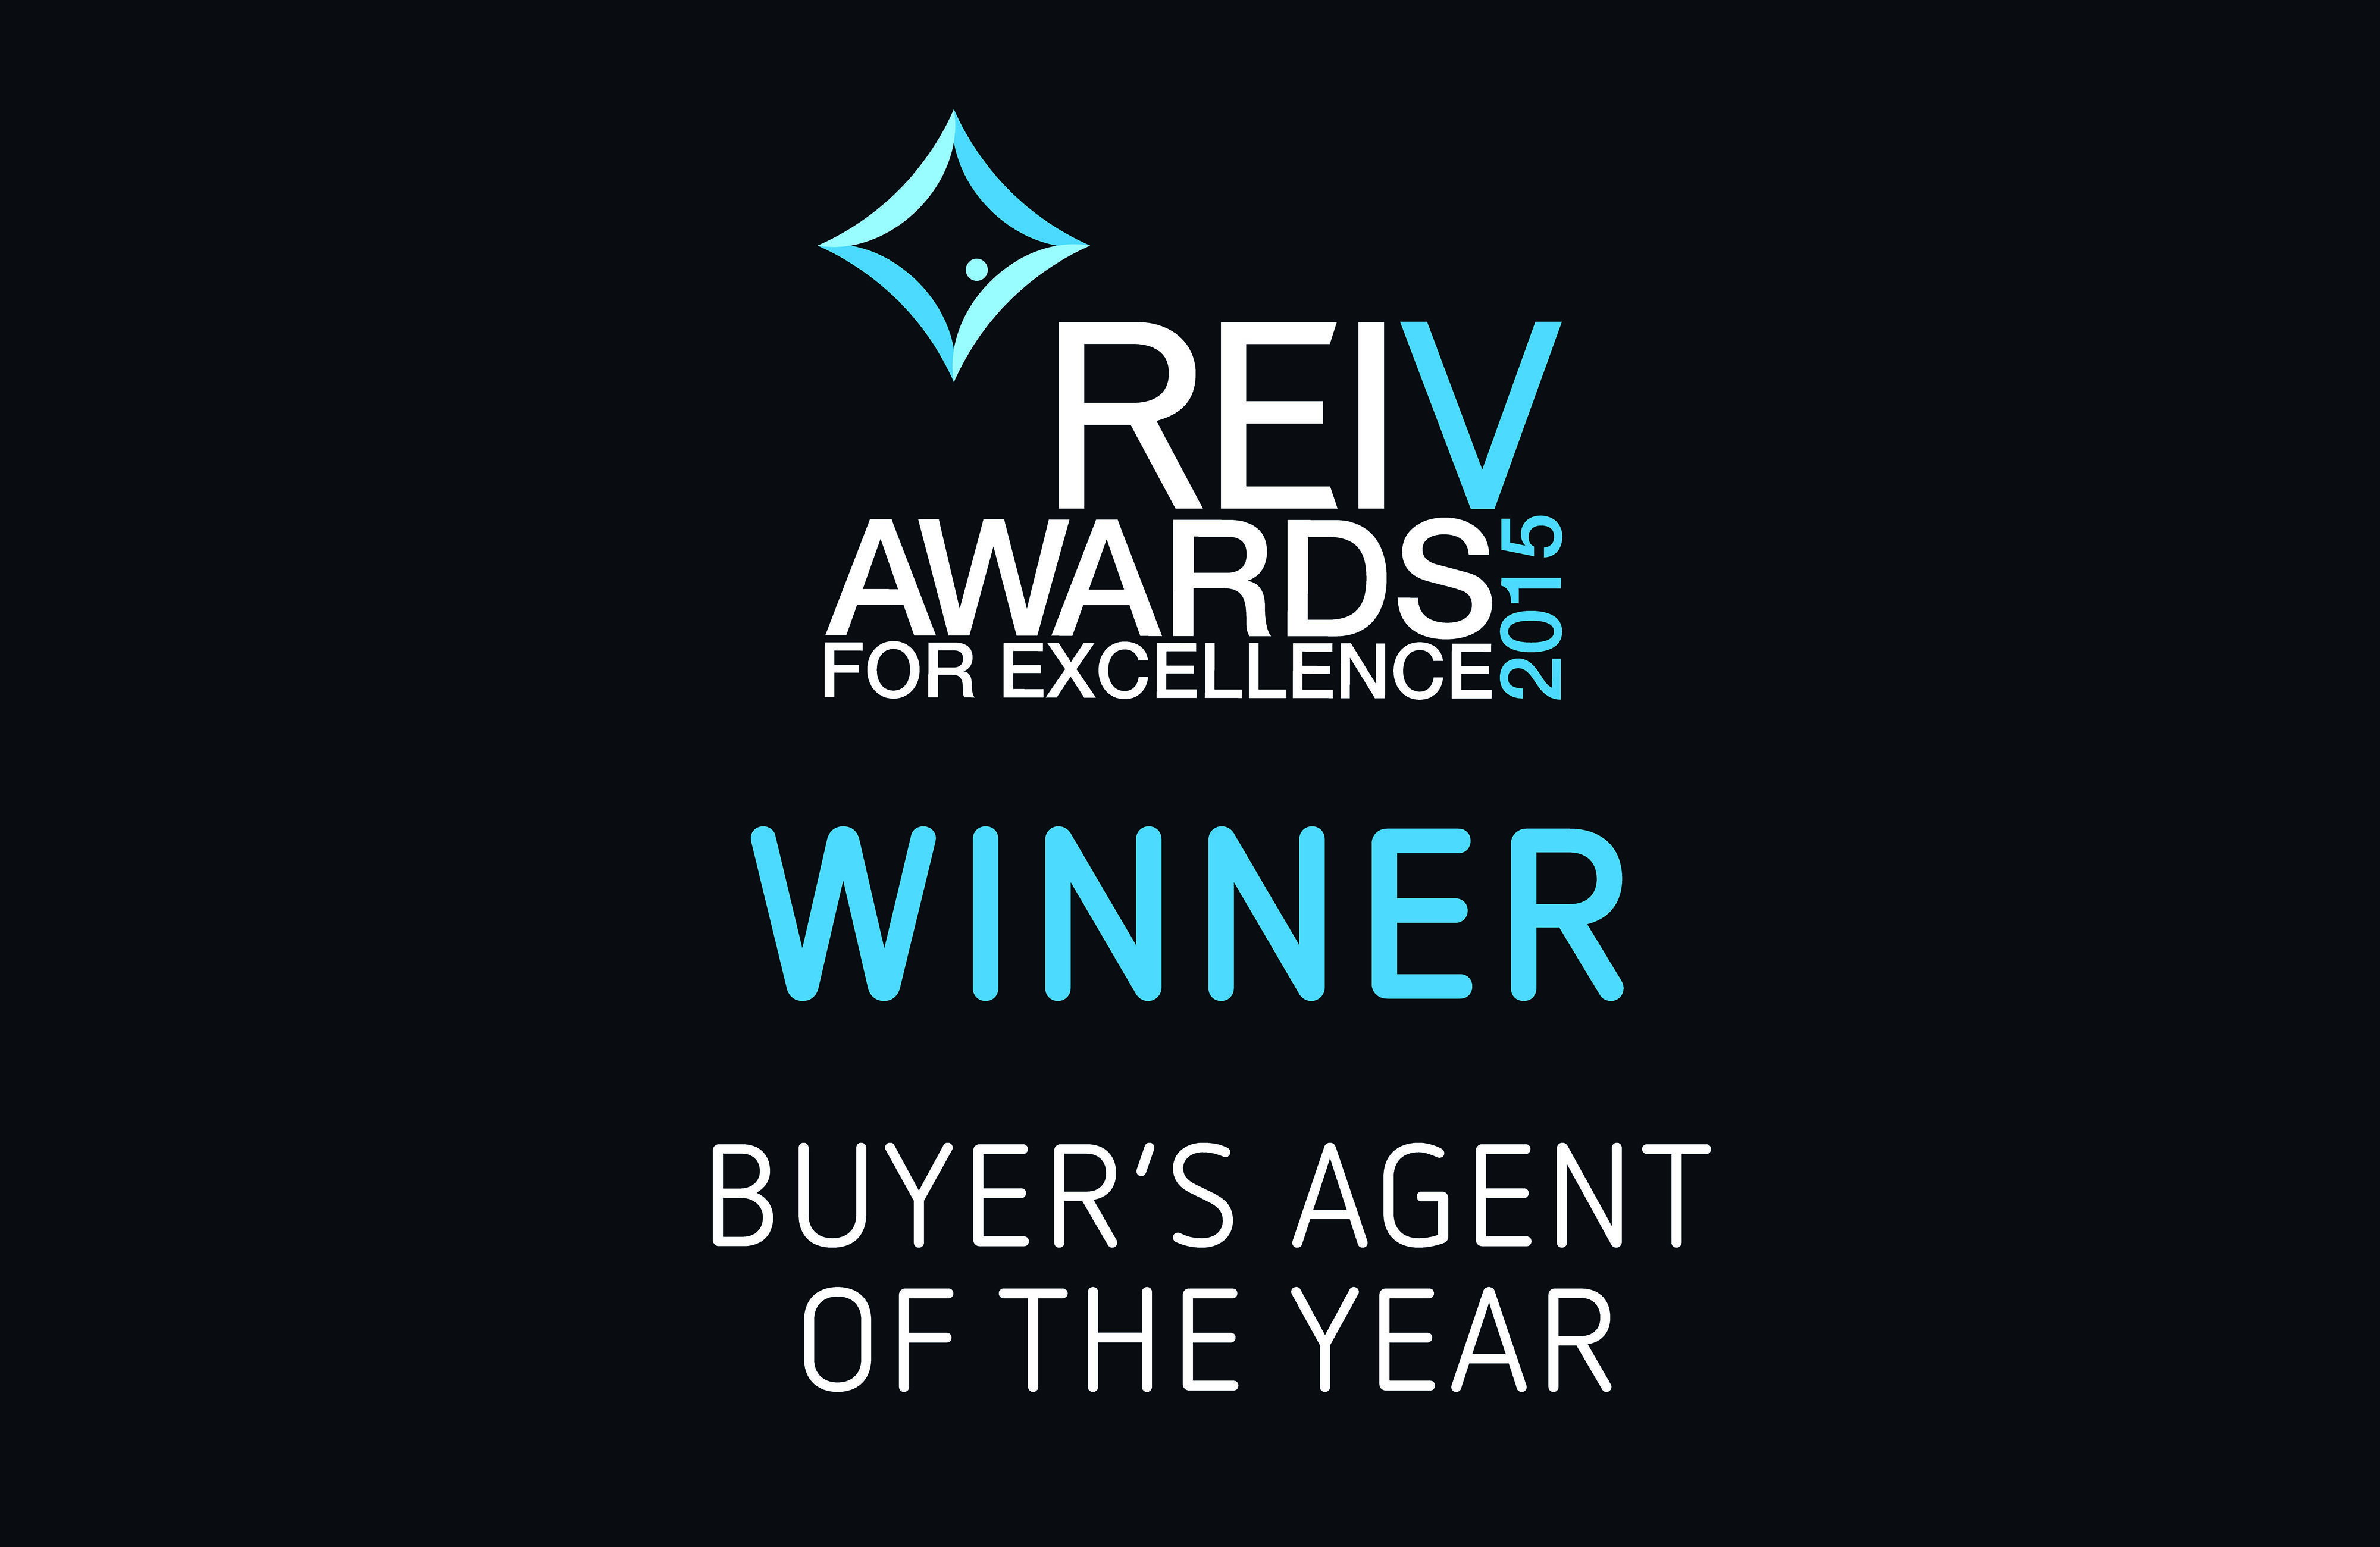 2015 - Medium Residential Agent of the Year